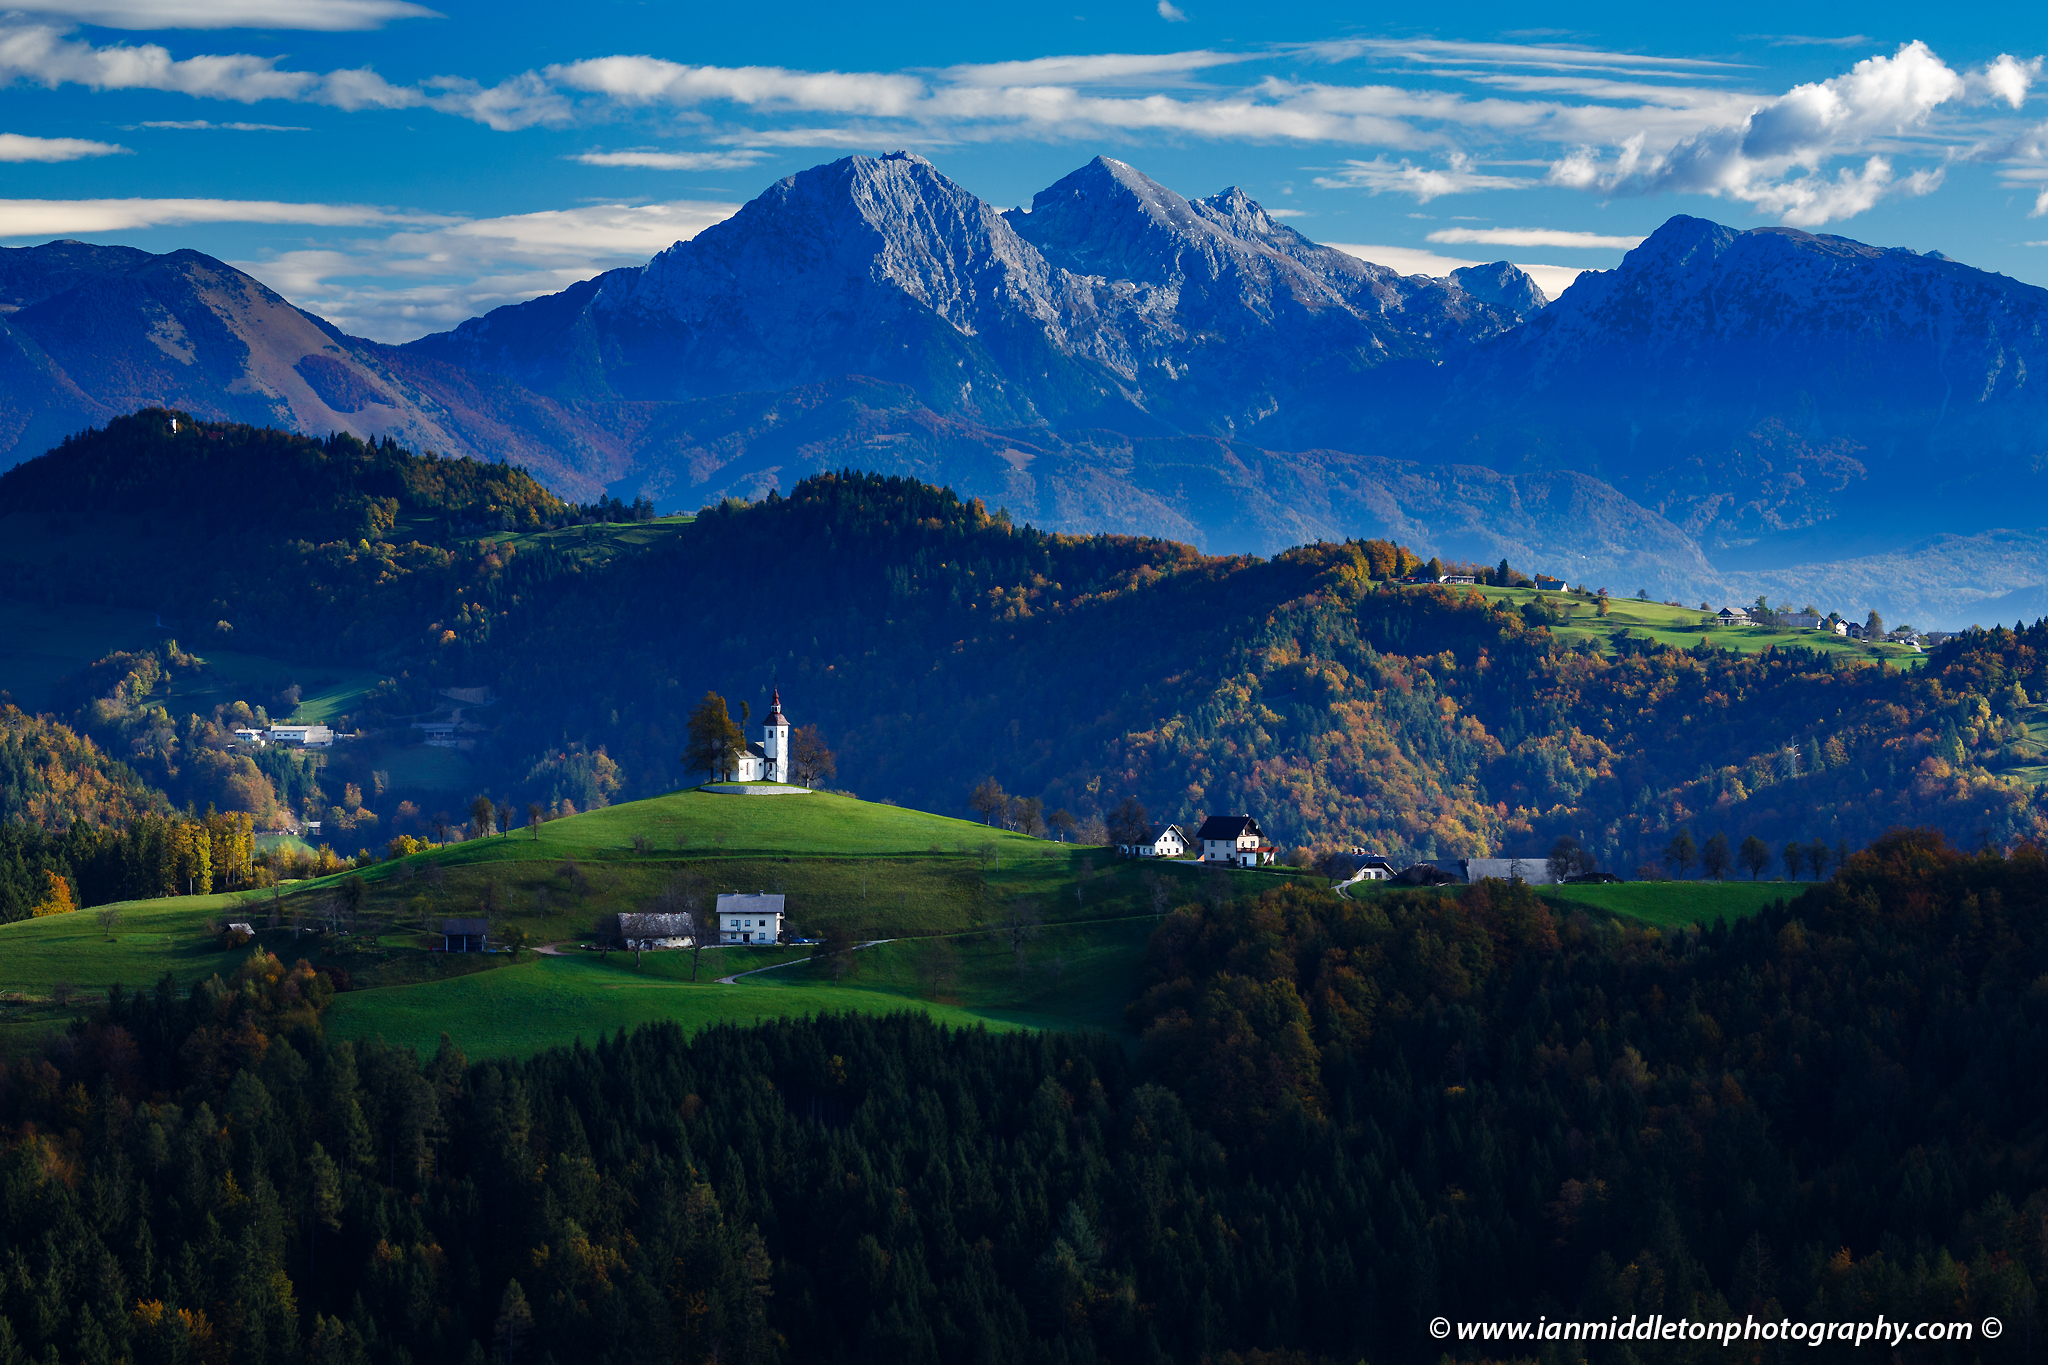 View from Rantovše hill across to Sveti Tomaz nad Praprotnim (church of Saint Thomas) in the Skofja Loka hills, Slovenia.